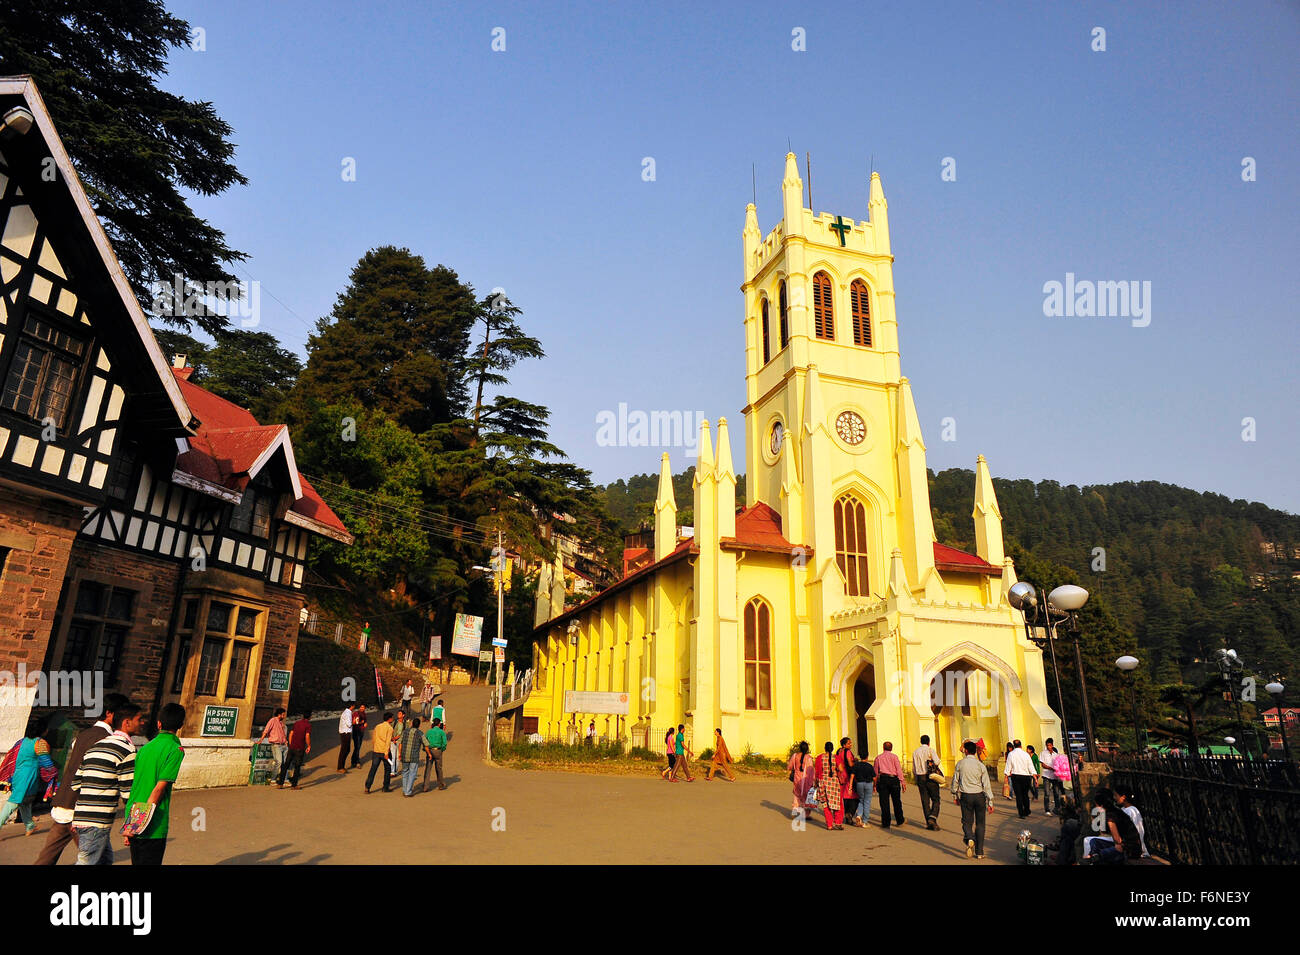 Christ church, shimla, himachal pradesh, india, asia - Stock Image